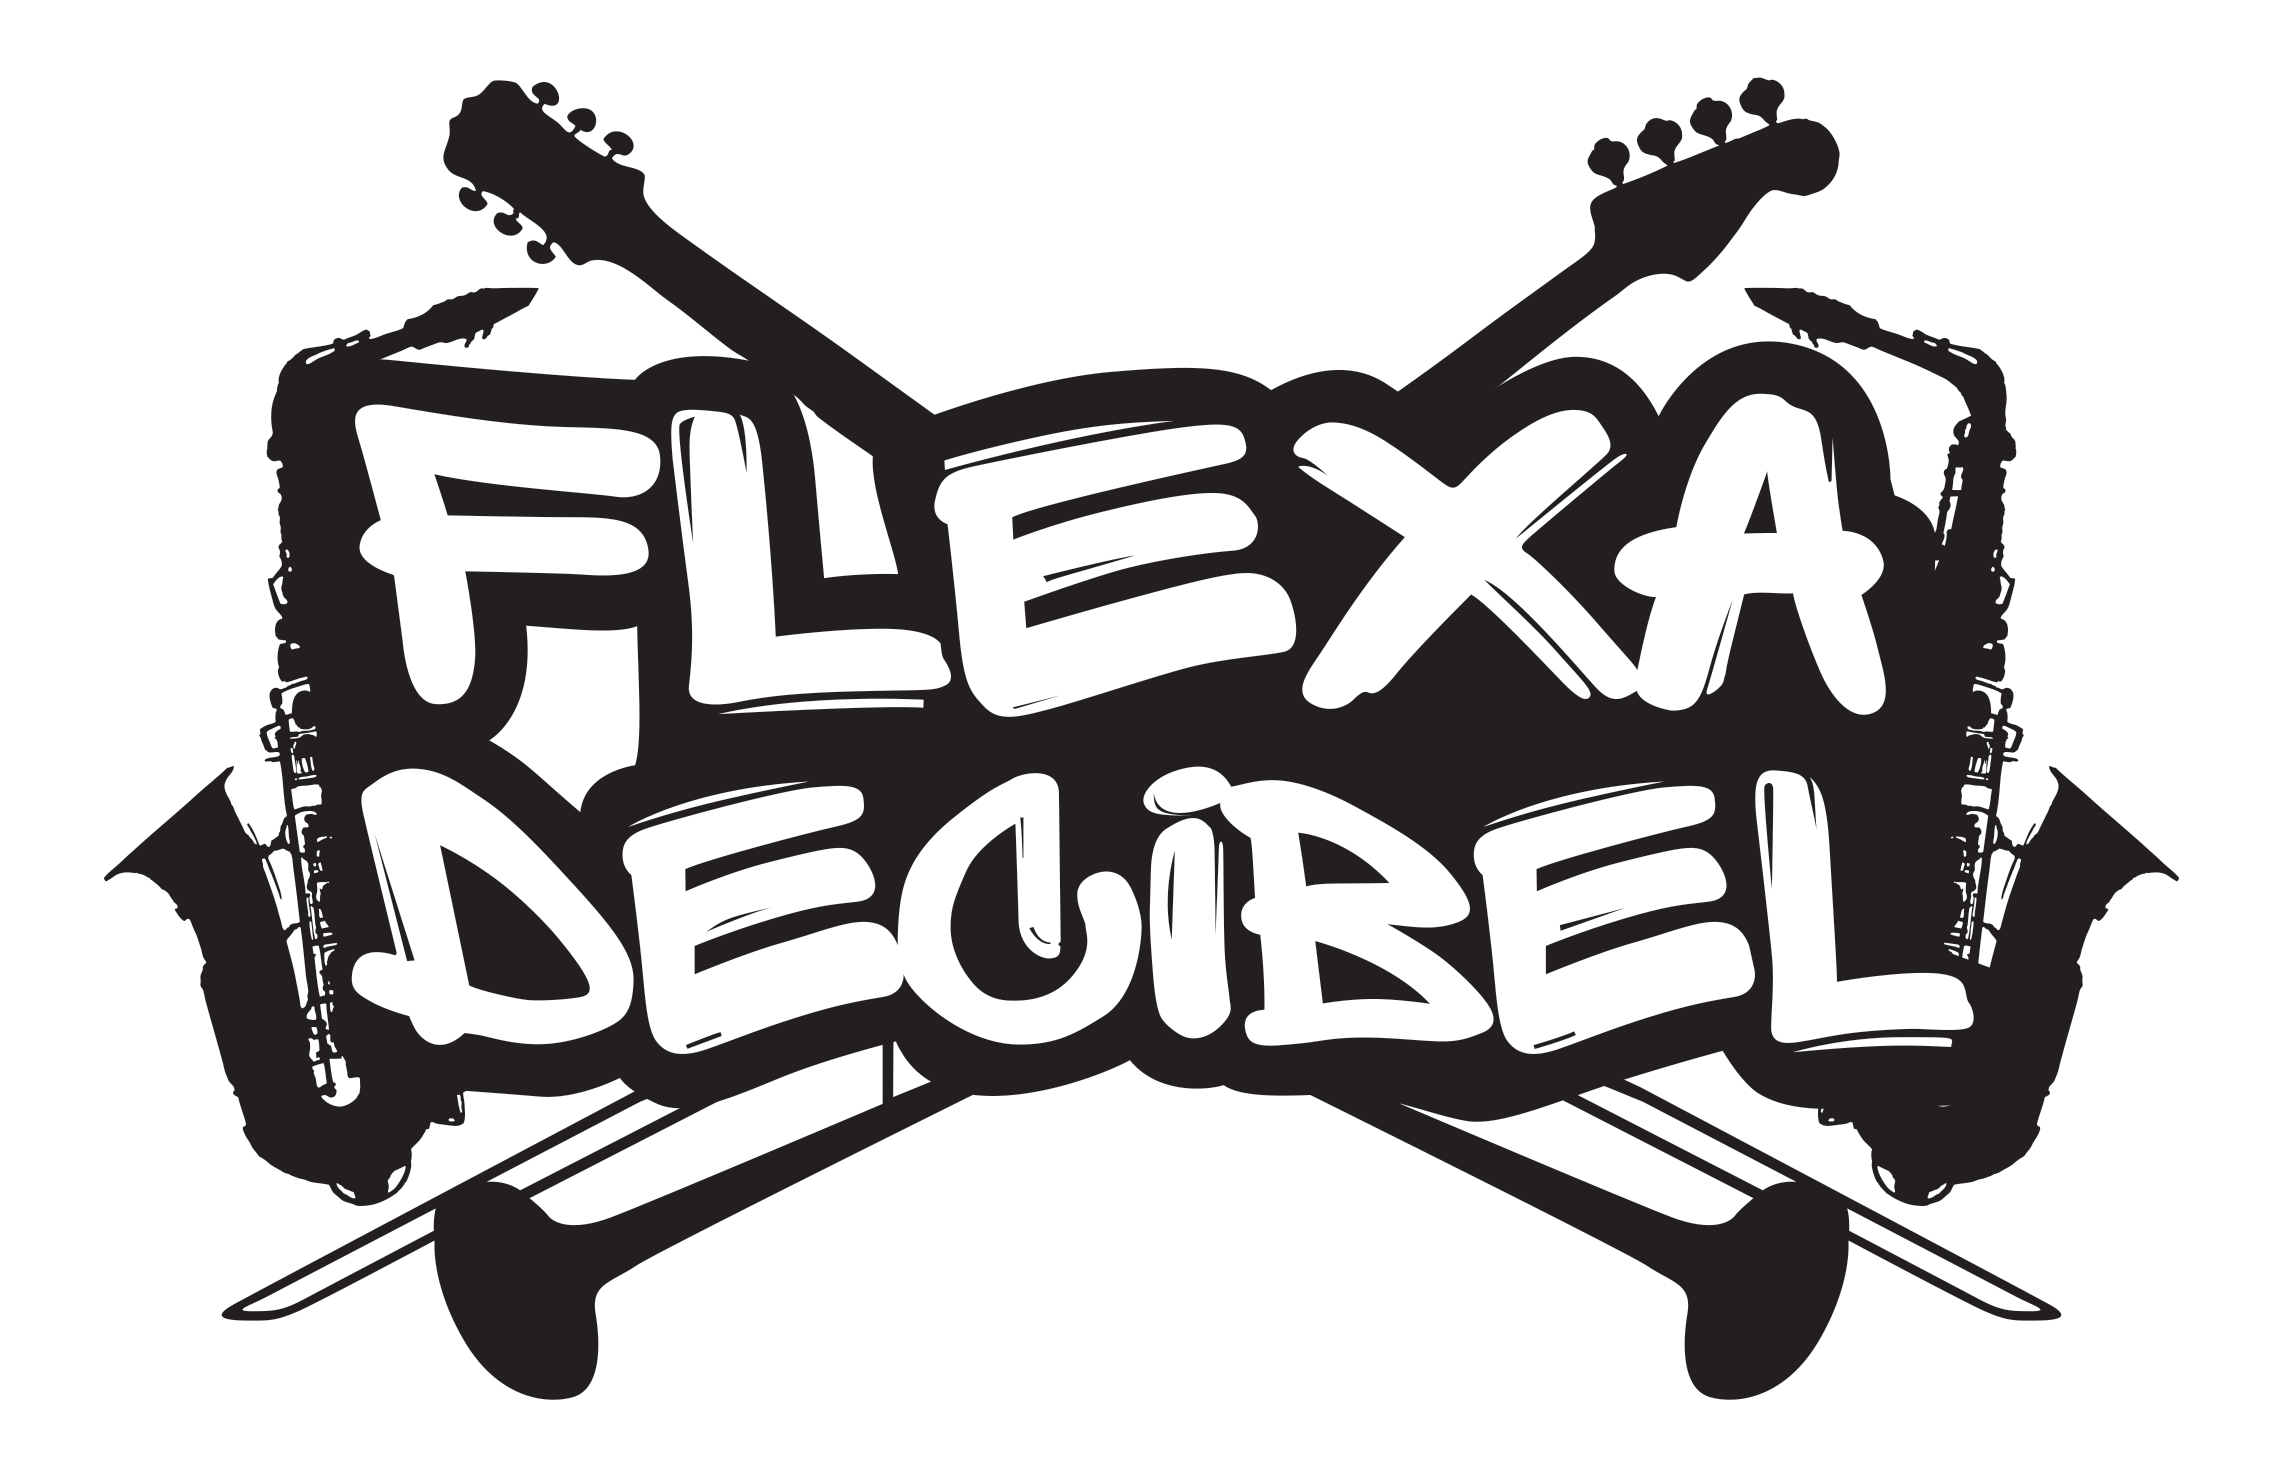 Flexadecibel